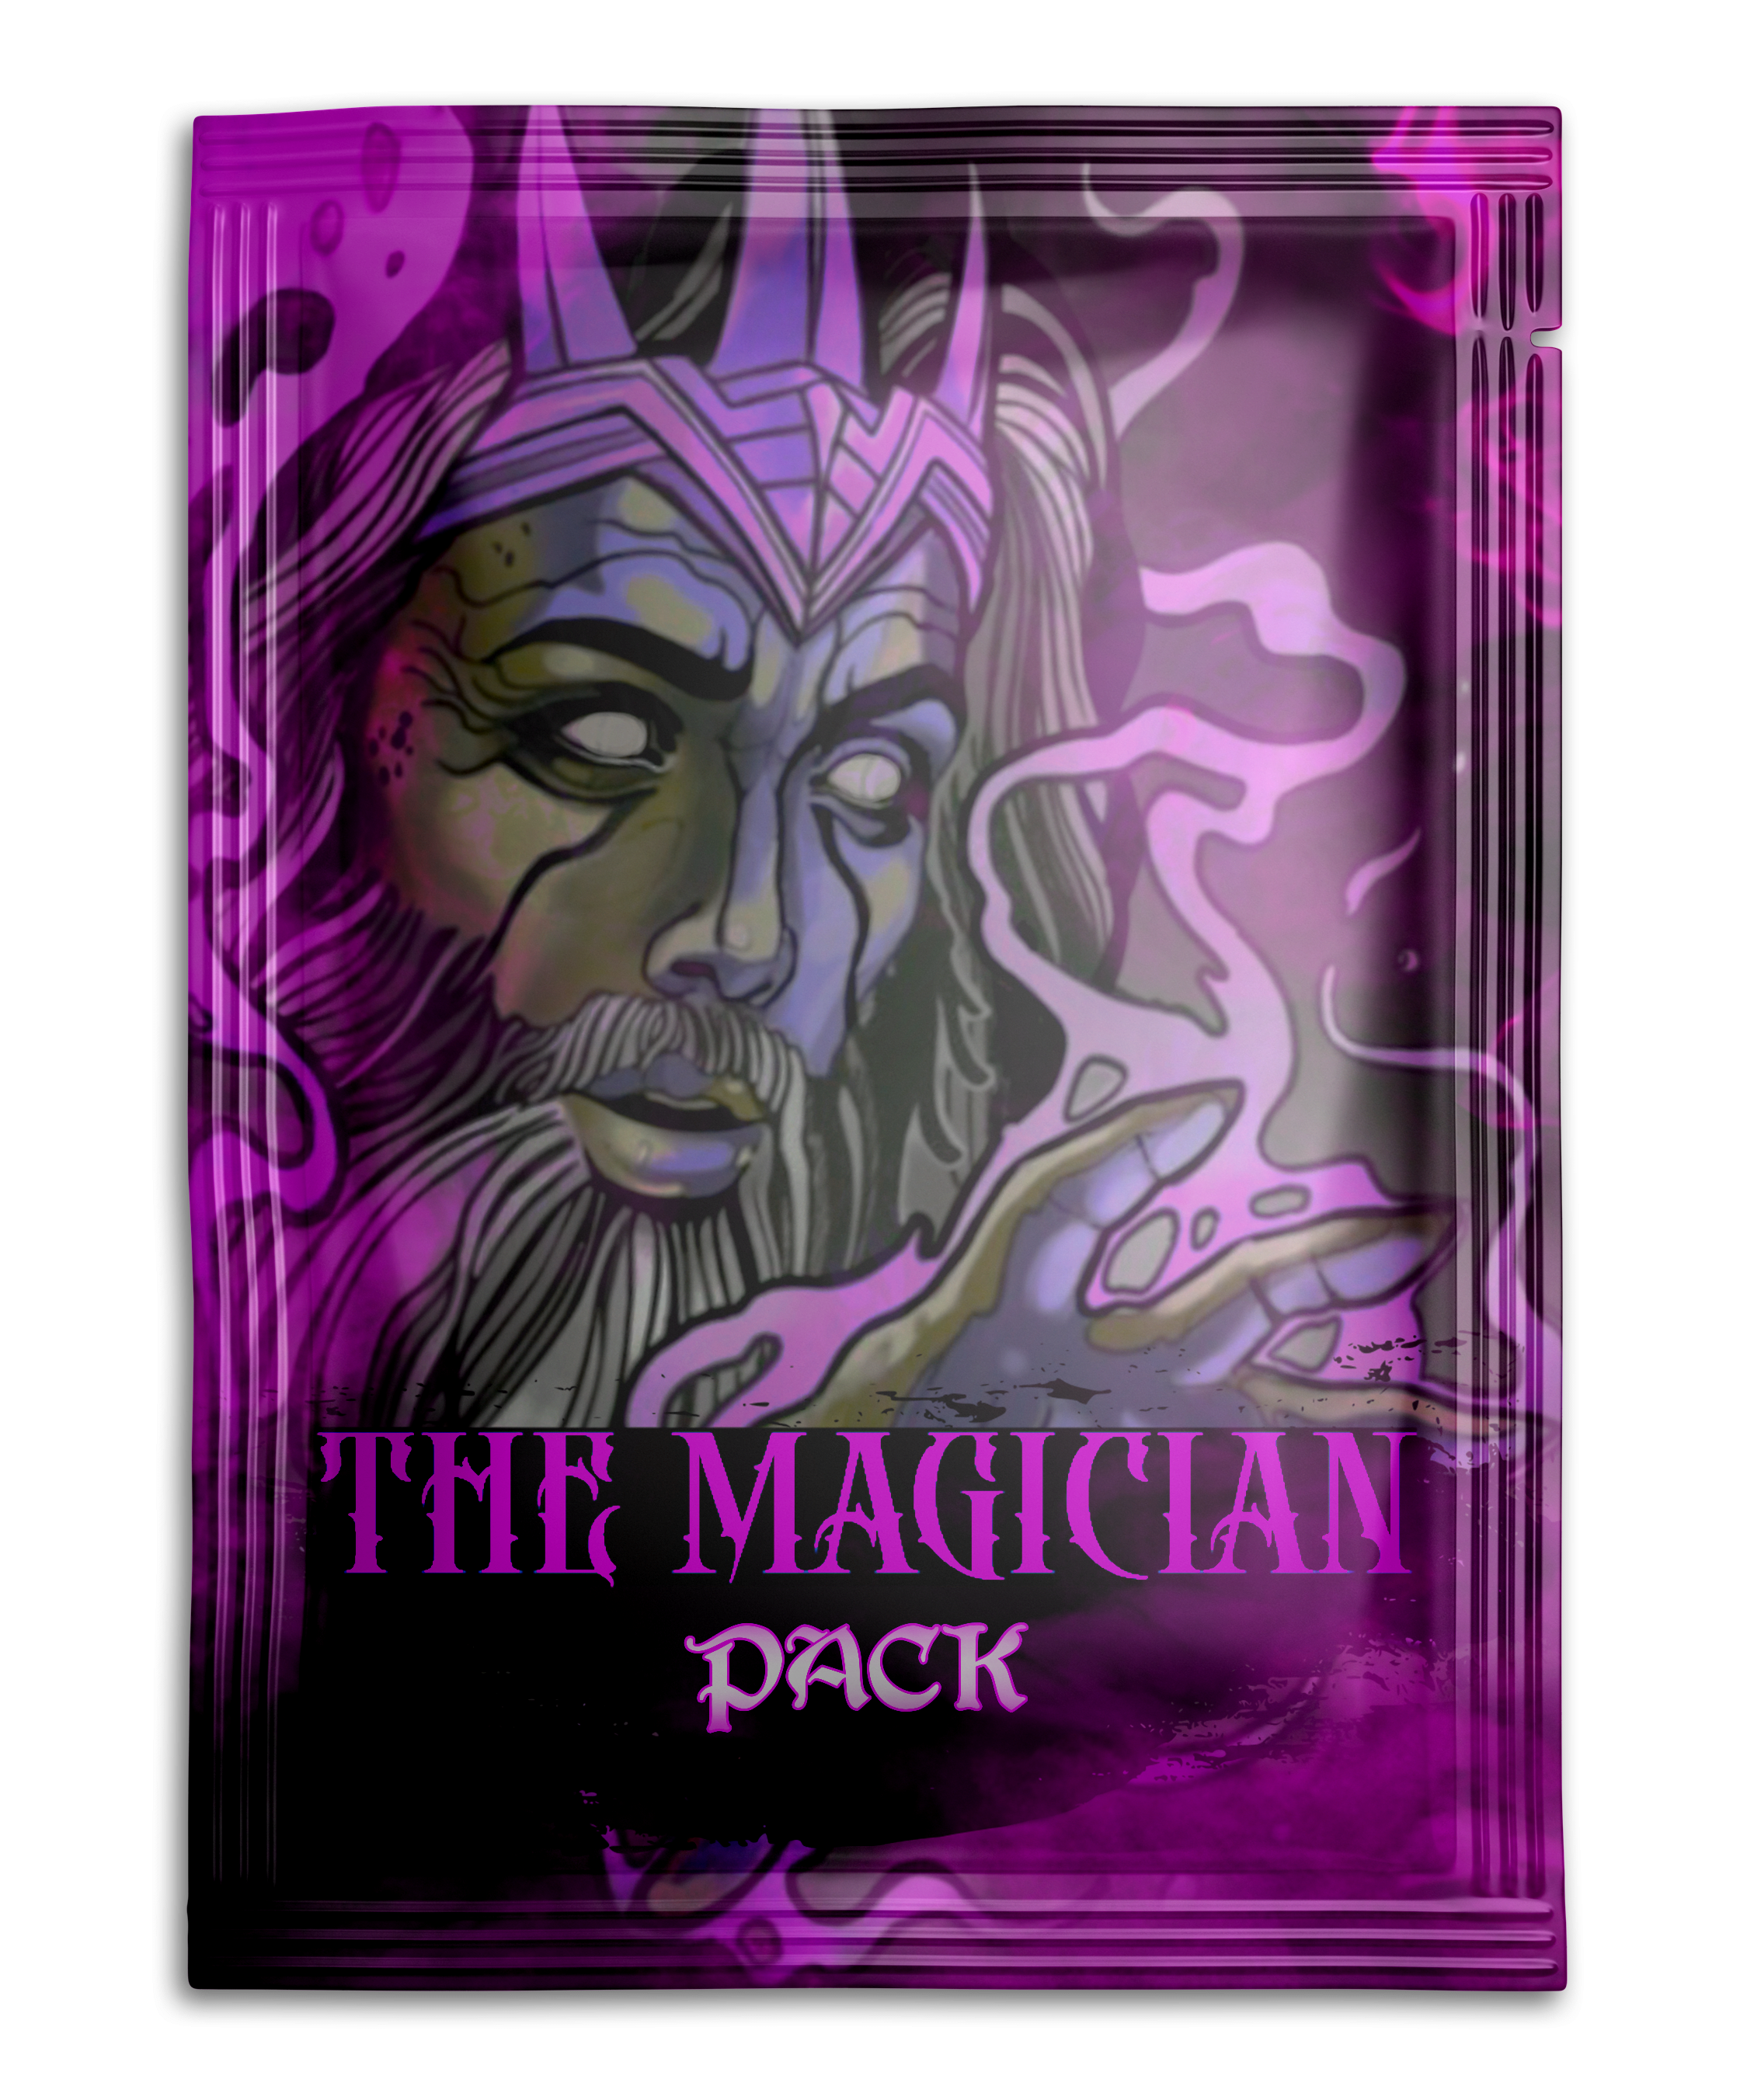 the magician pack